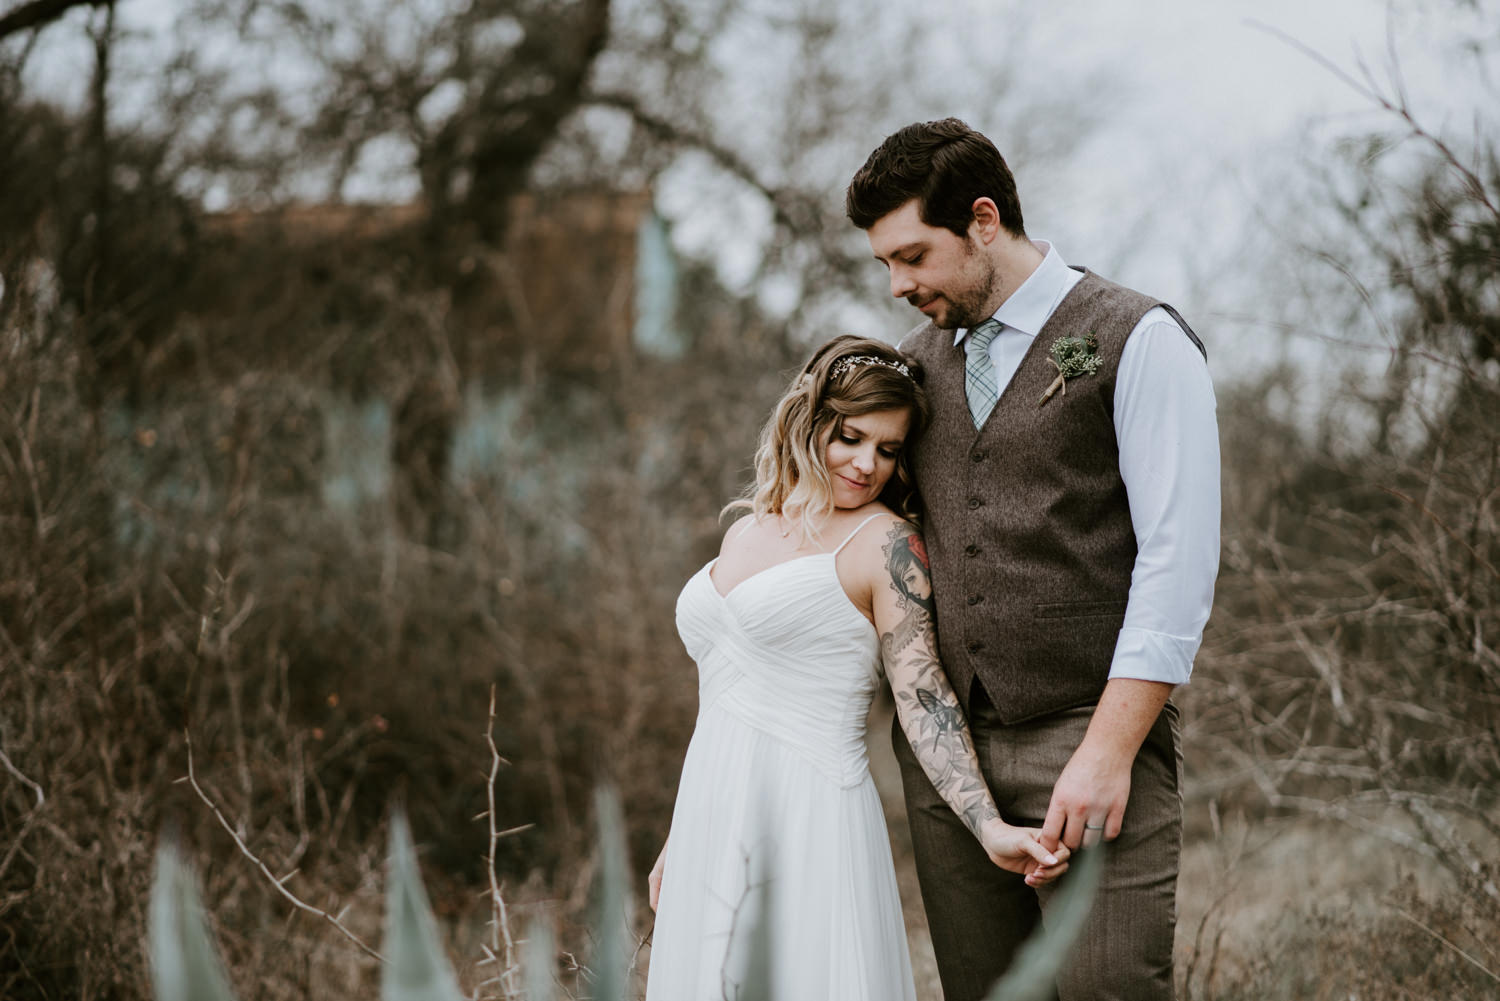 Wedding photos by Donny Tidmore Photography